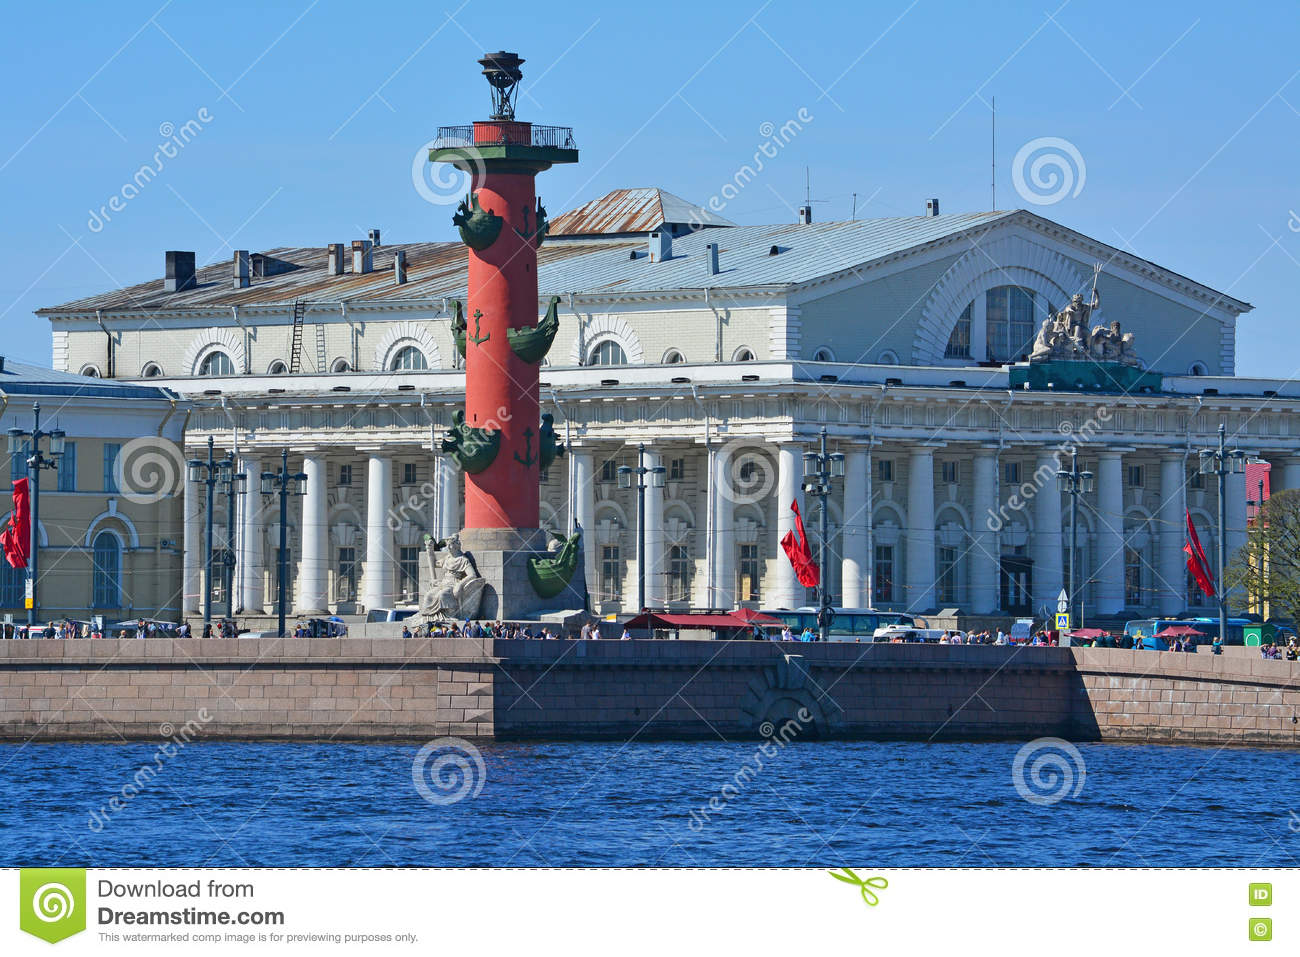 Rostral Column And Building Of The Exchange In St. Petersburg.